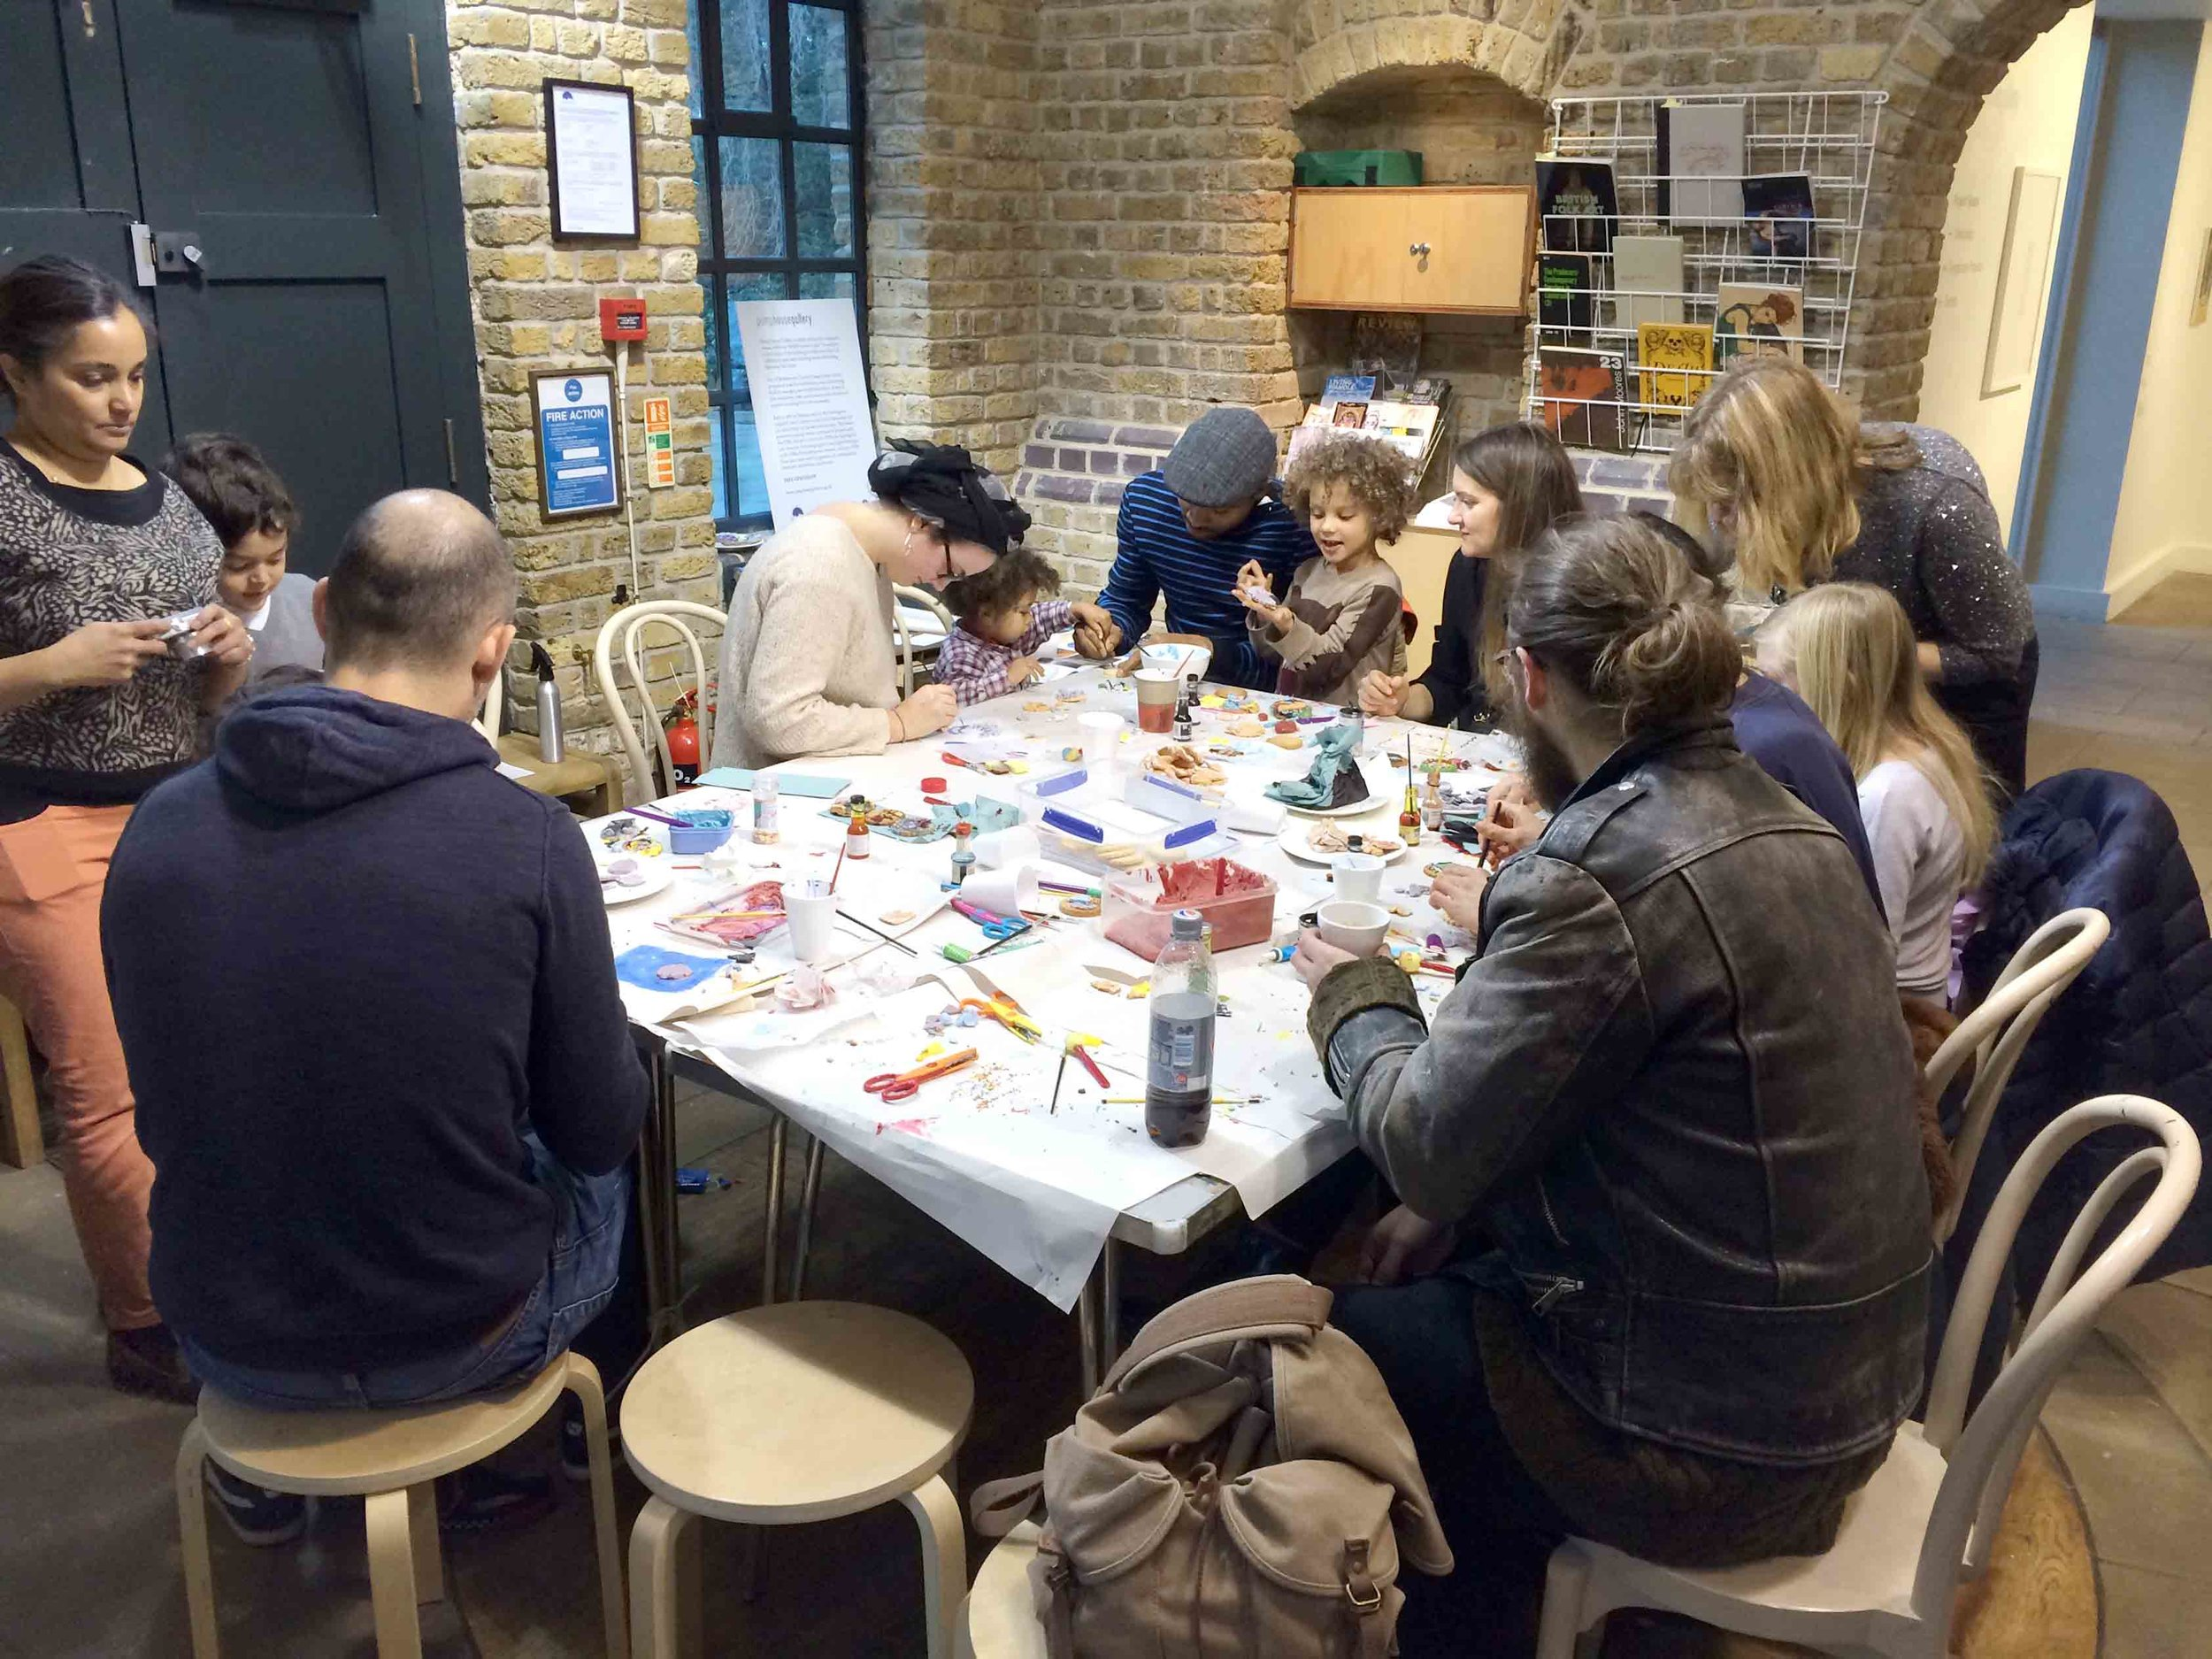 edible art workshop london.jpg